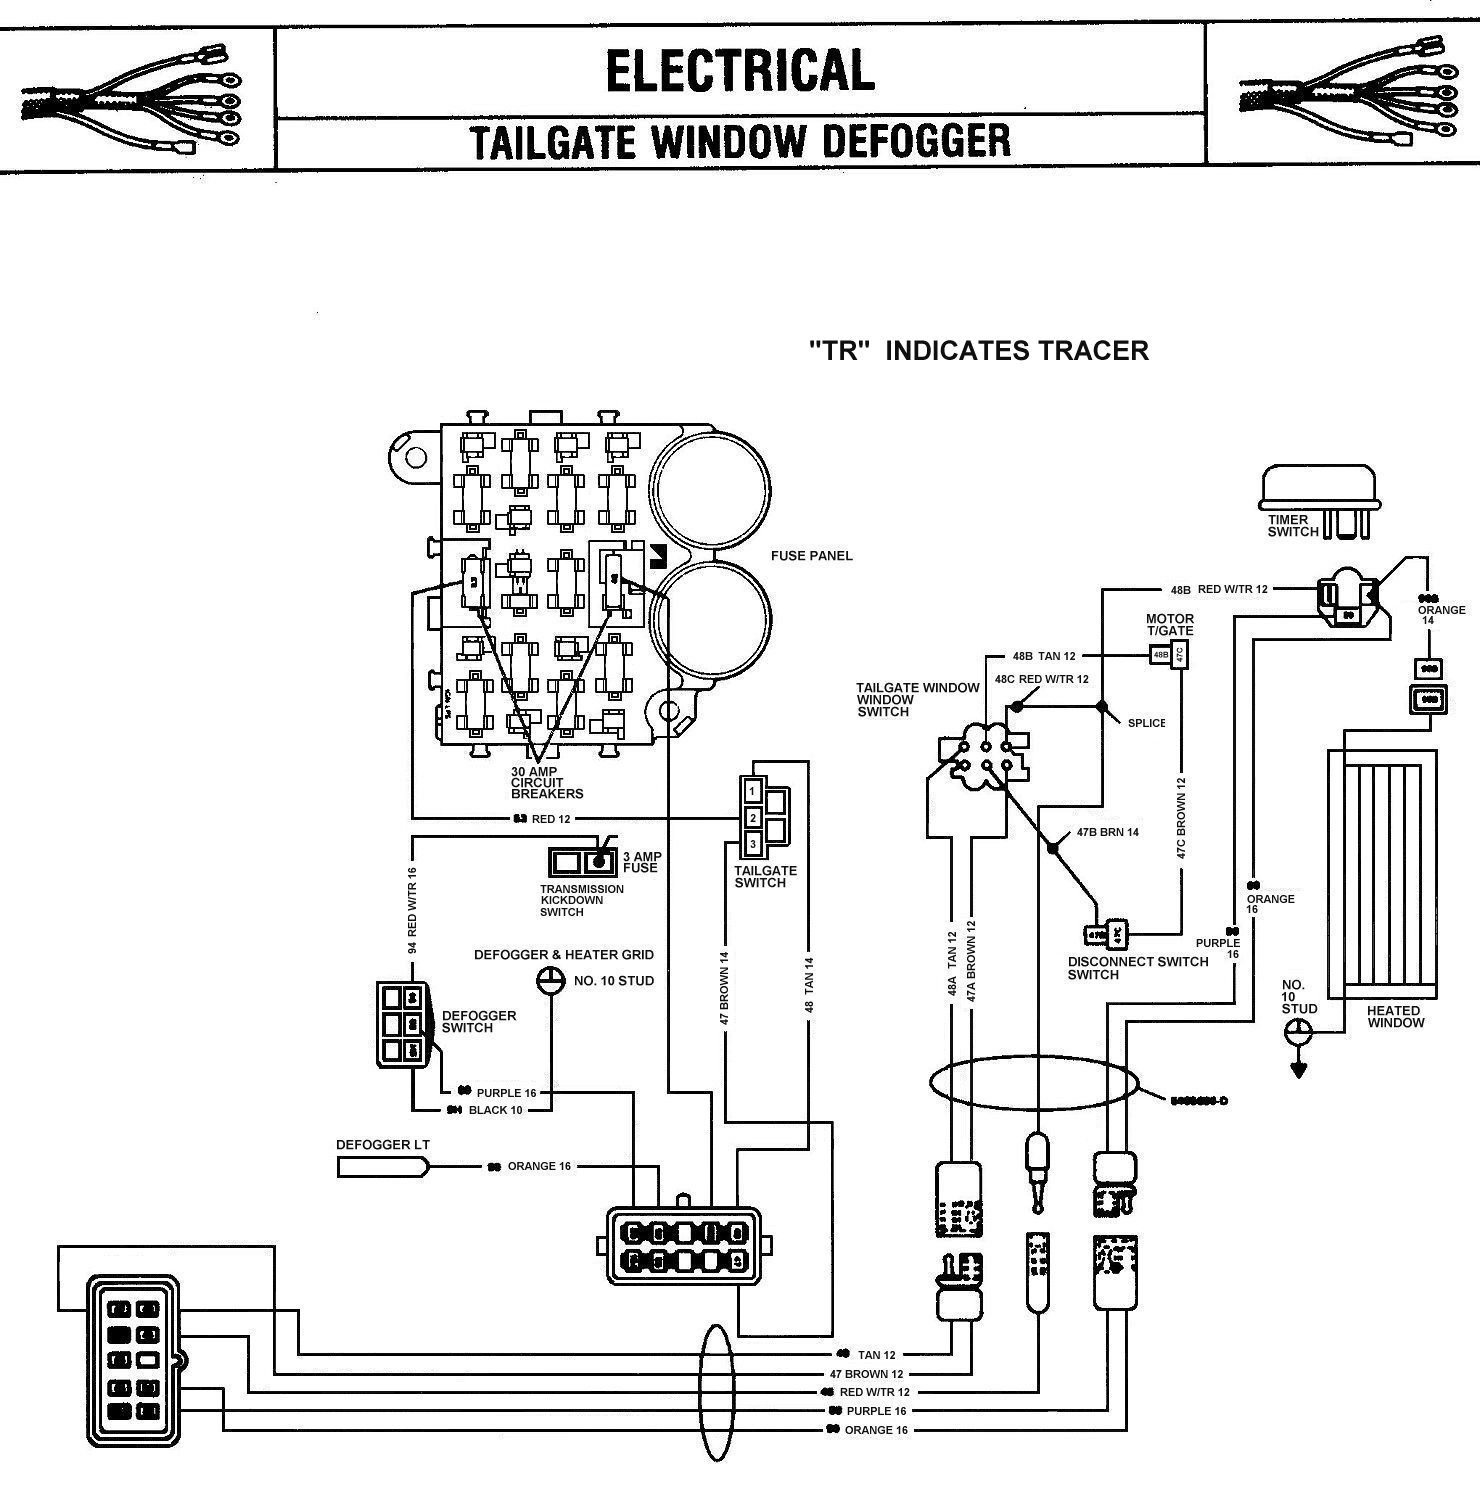 Tom 'Oljeep' Collins FSJ Wiring Page on gm truck wiring diagrams, cat truck wiring diagrams, international truck parts diagrams, international truck electrical diagrams, ihc truck parts, mazda truck wiring diagrams, international truck wiring diagrams, chevrolet truck wiring diagrams, kenworth truck wiring diagrams, mack truck wiring diagrams, dodge truck wiring diagrams, medium duty truck wiring diagrams, ford truck wiring diagrams, freightliner truck wiring diagrams,